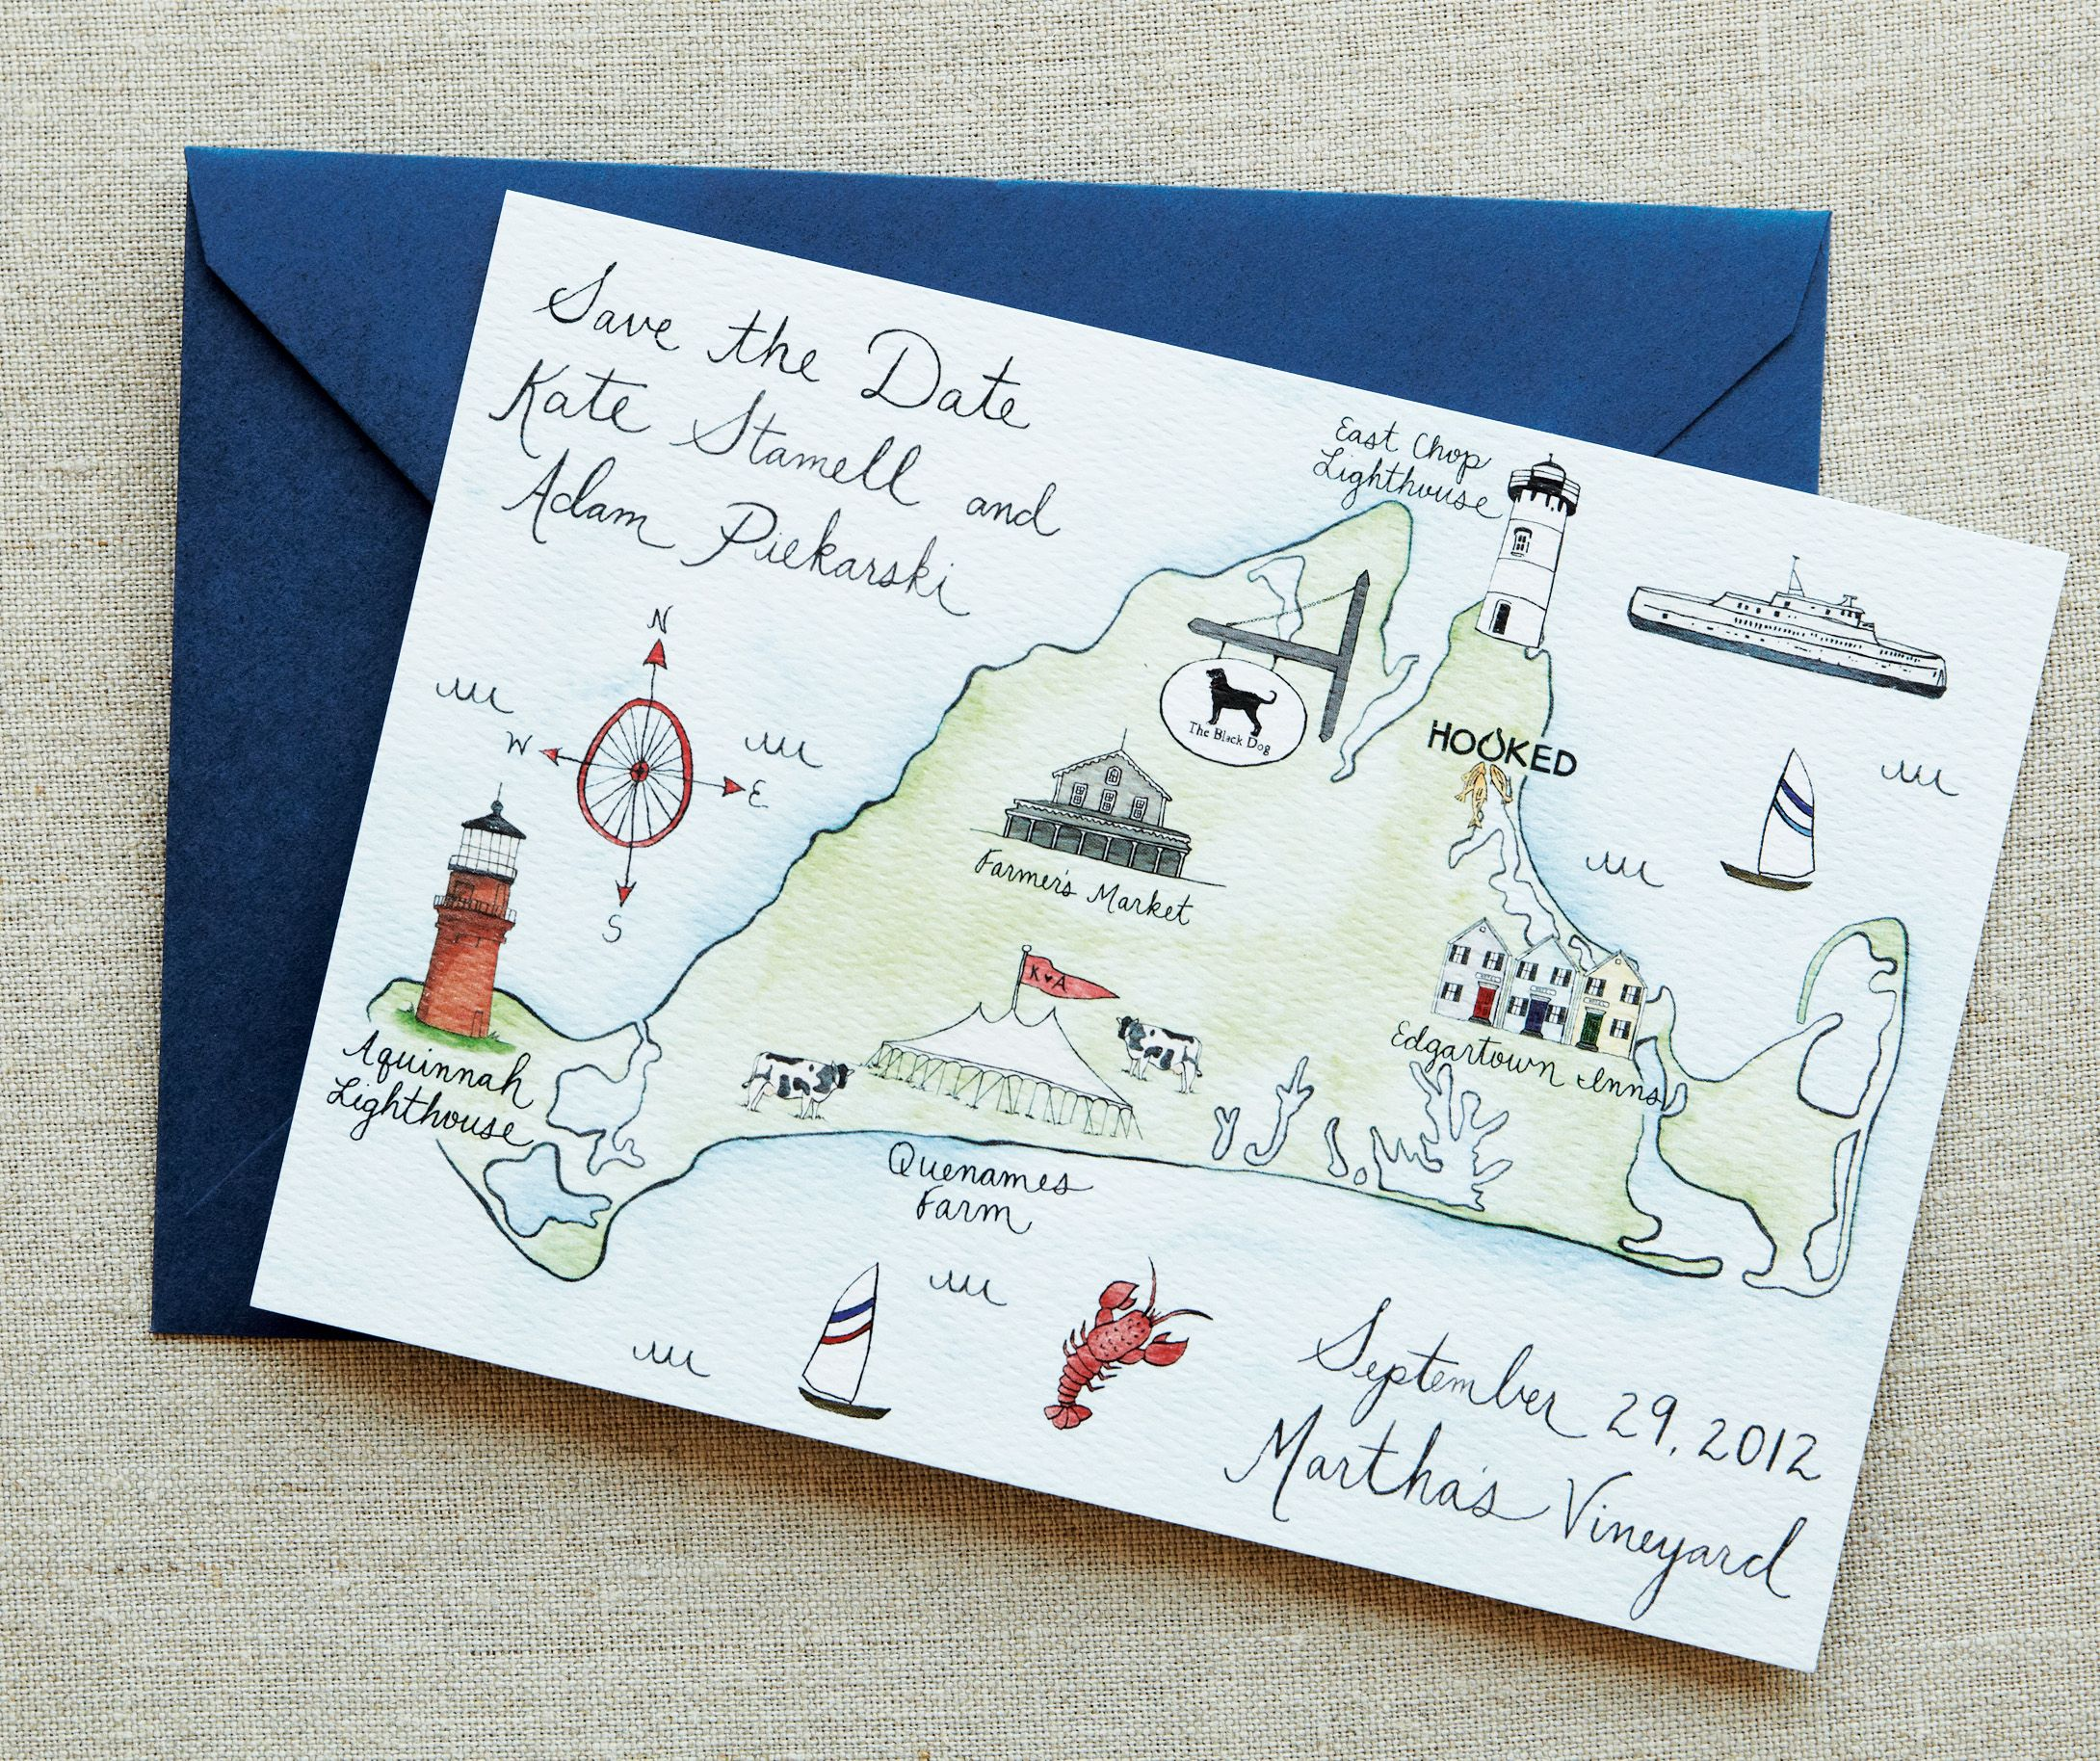 Loving this save the date would like to do a hand drawn Orcas